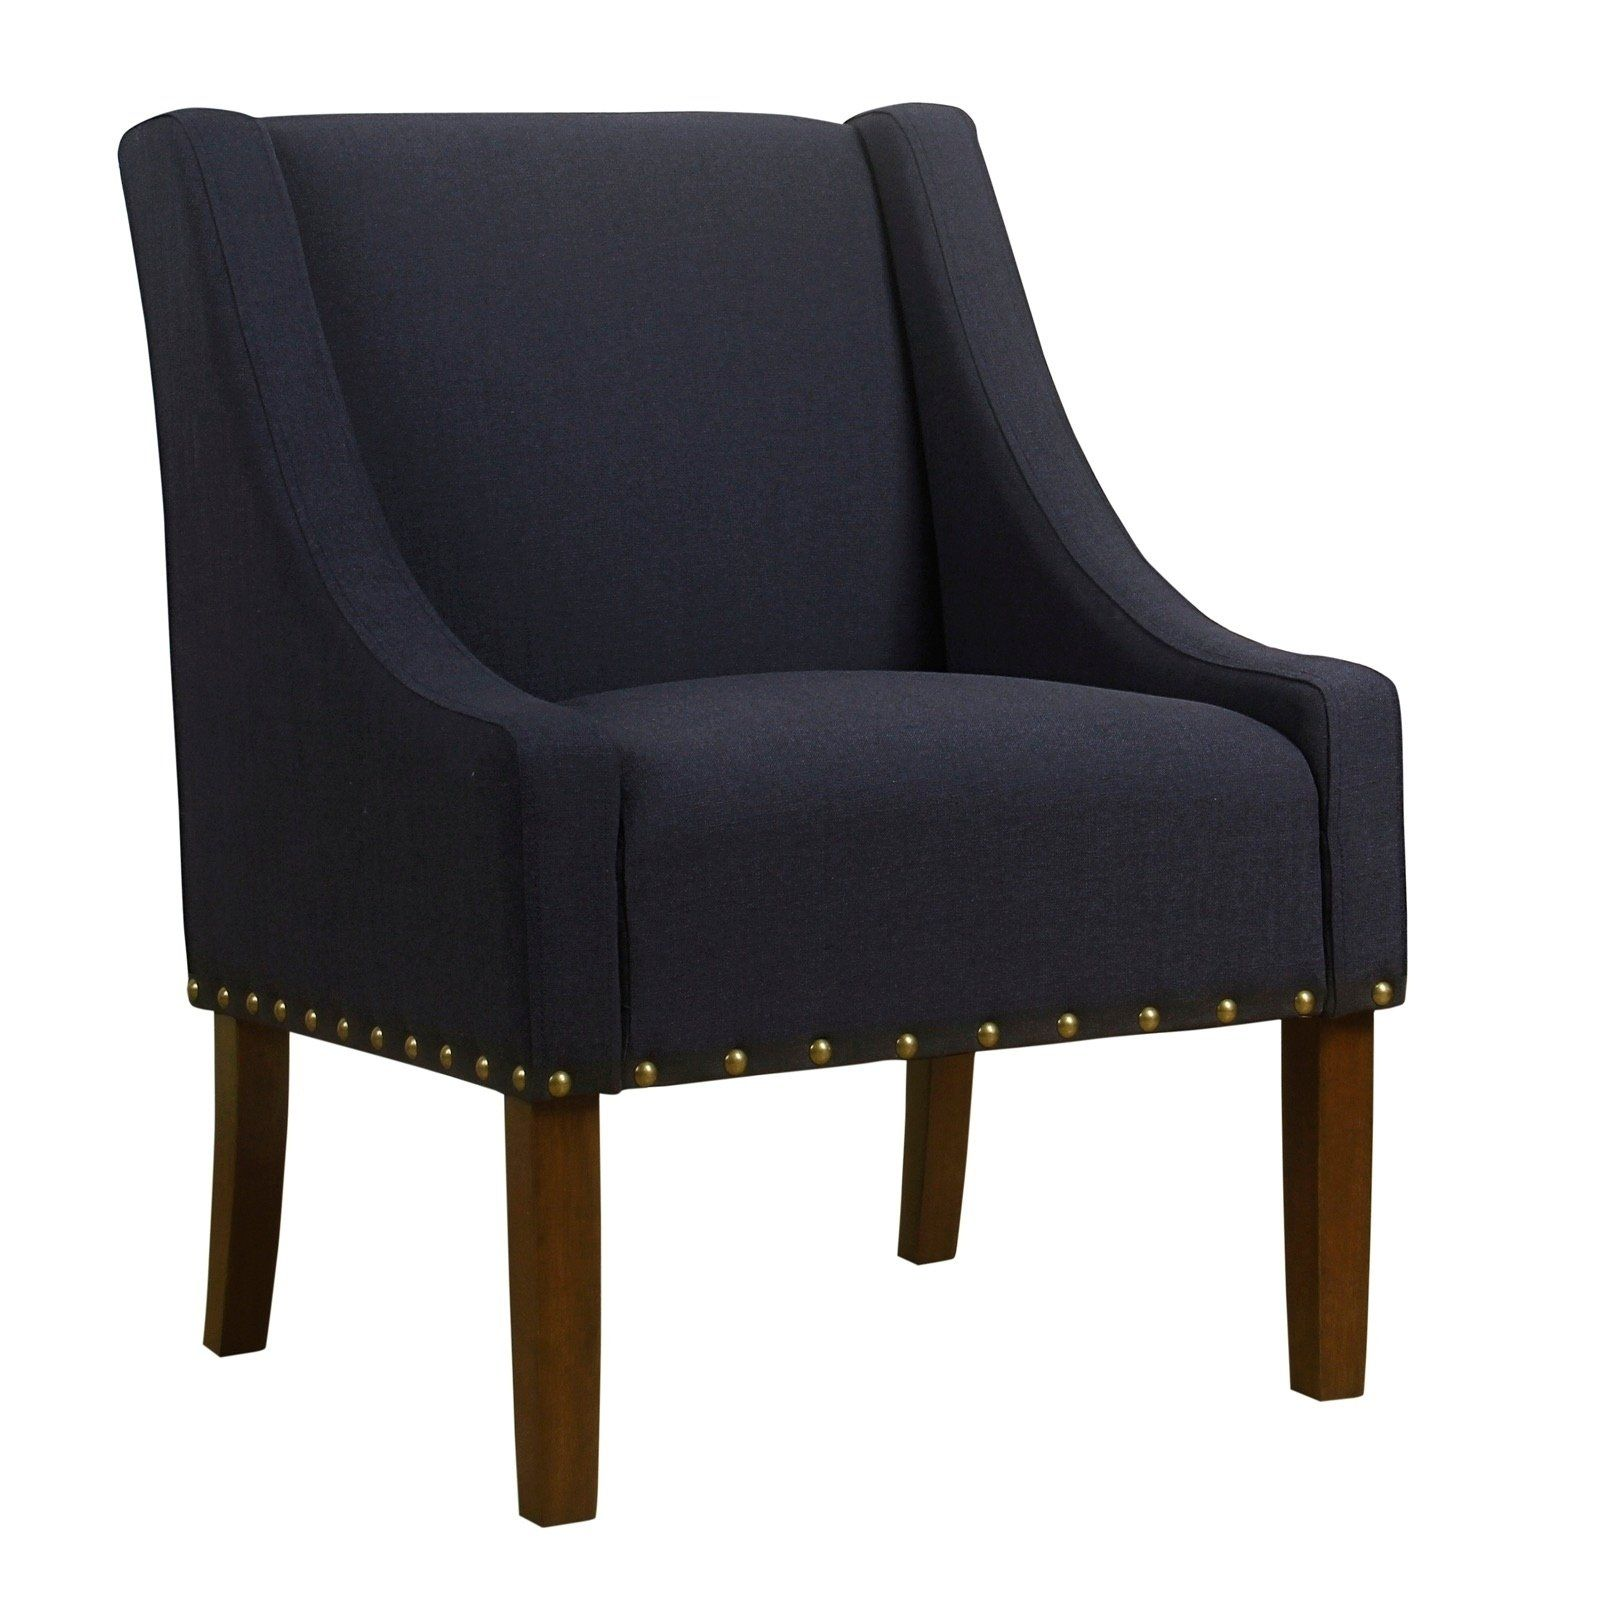 Best Fabric Upholstered Accent Chair With Swooping Arms And 400 x 300